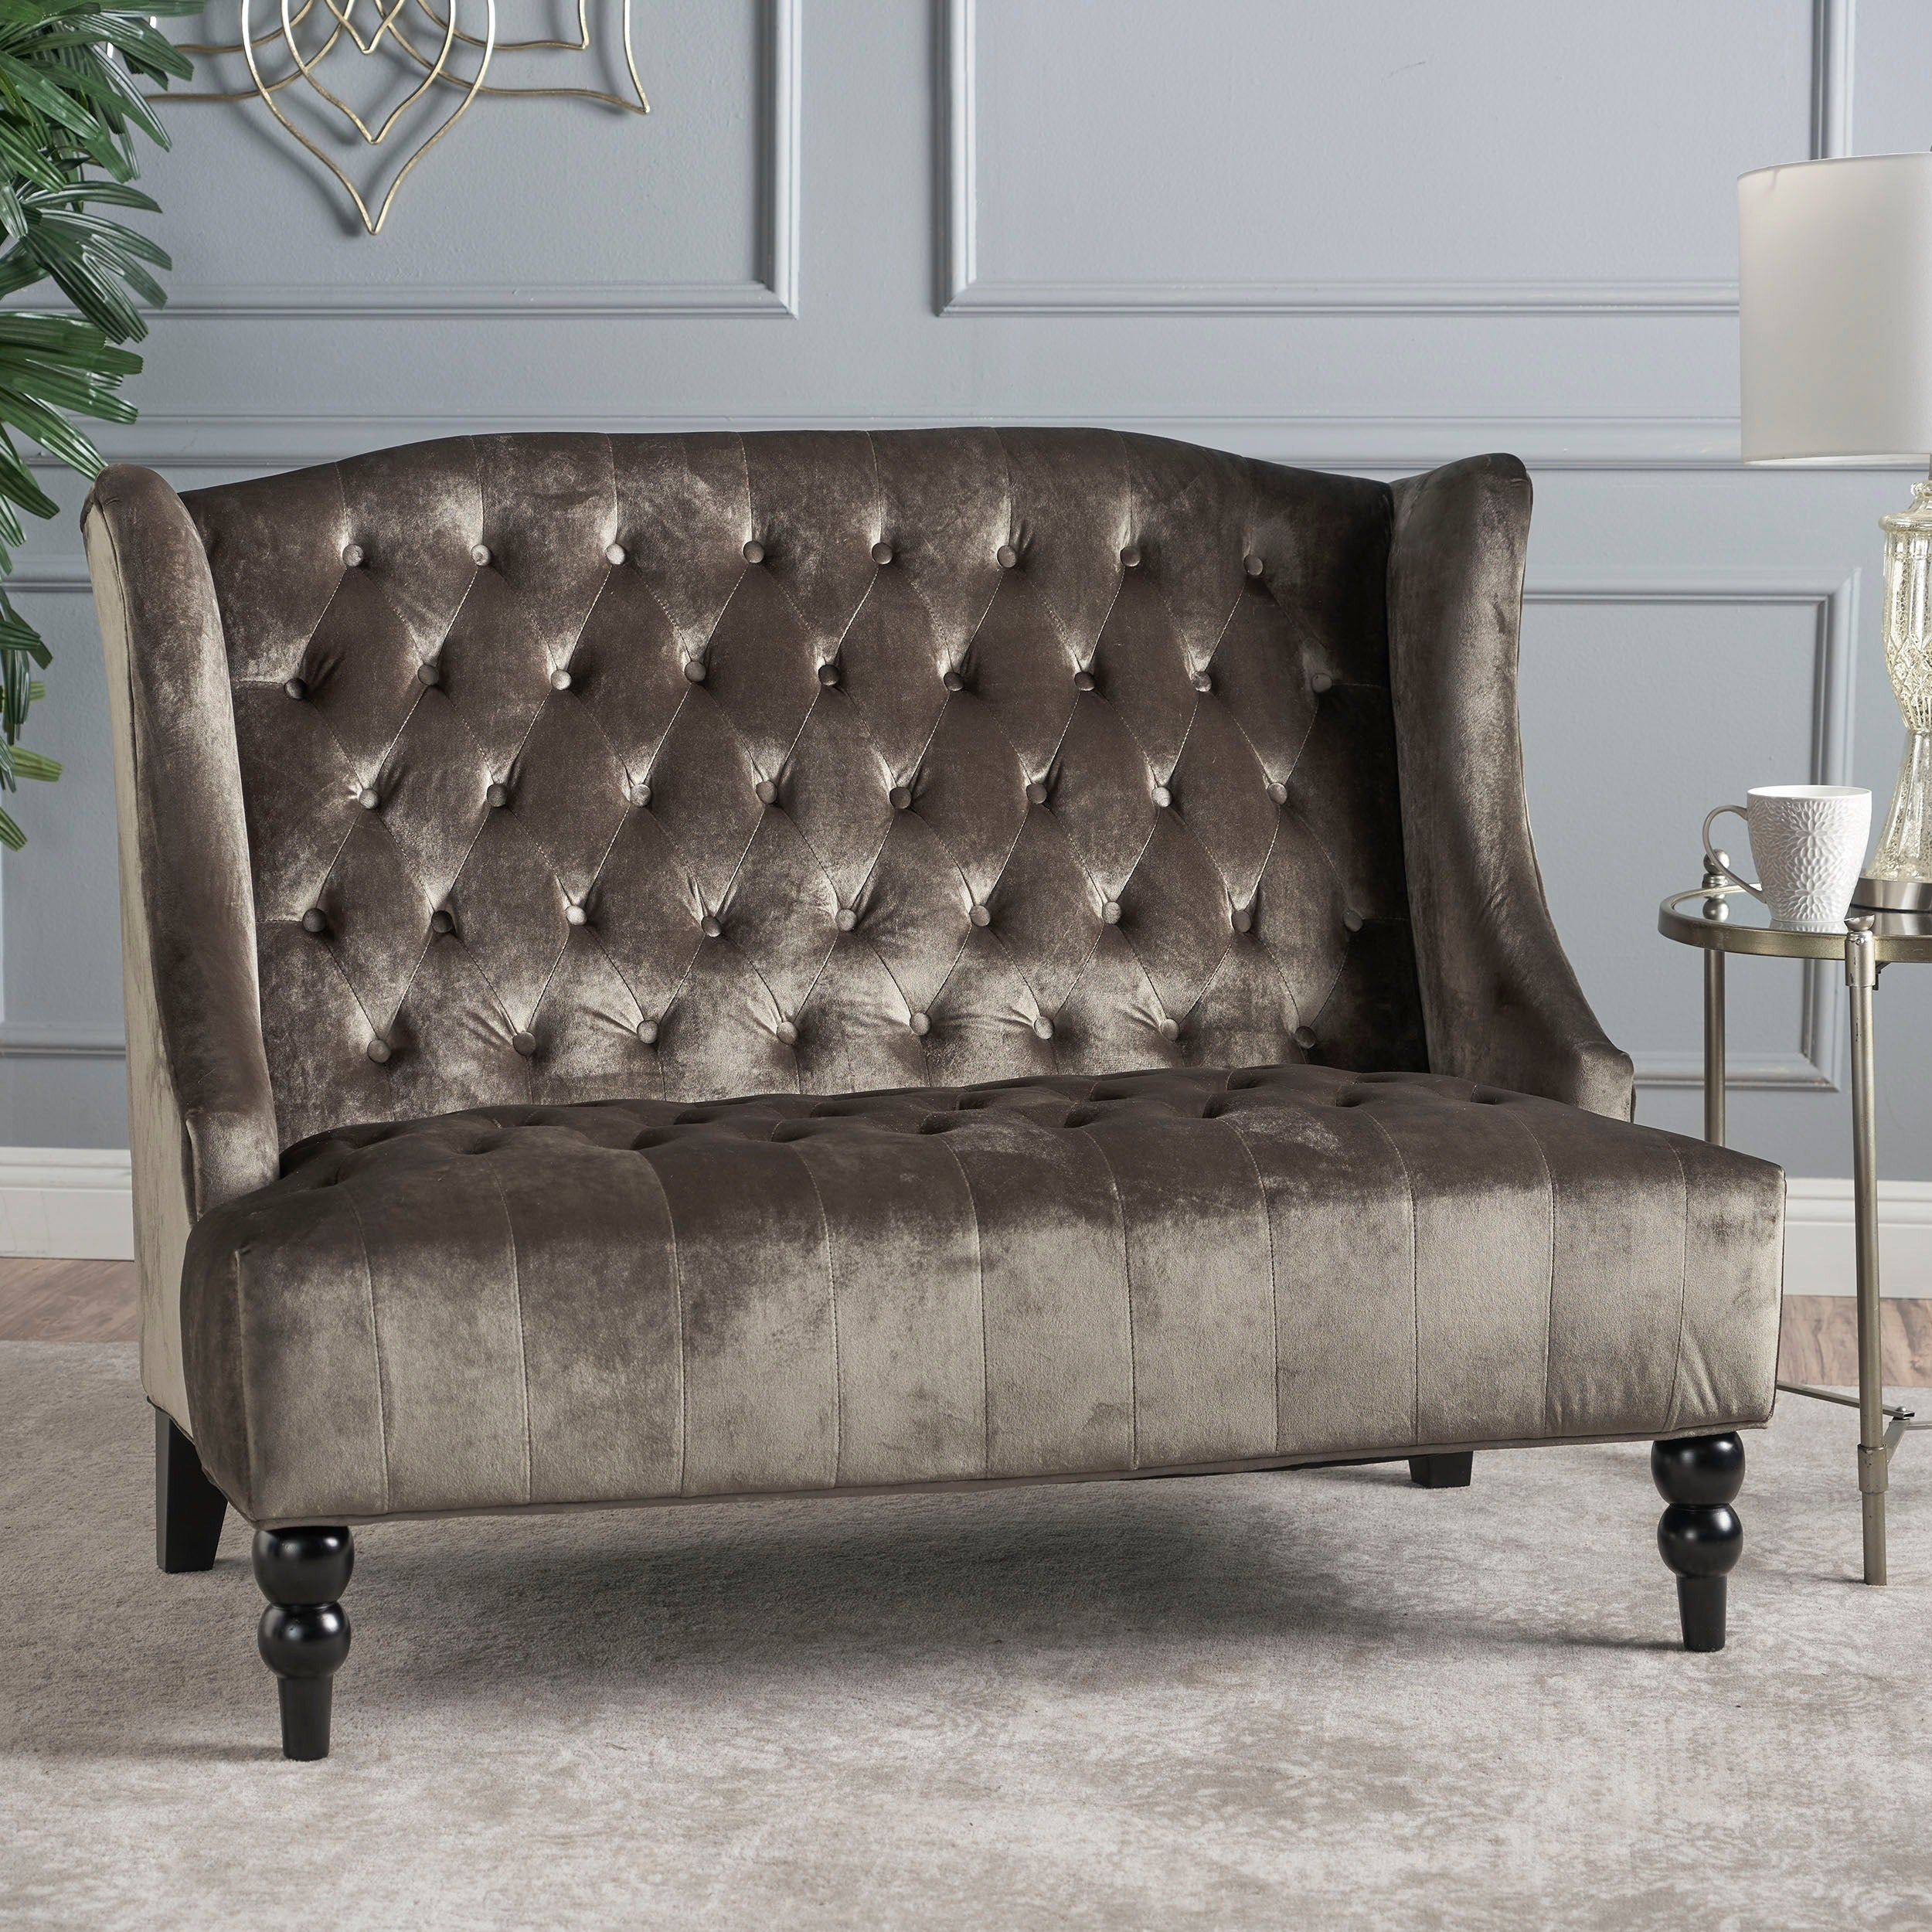 christopher product fabric knight today garden overstock free home tufted loveseat by faye classical shipping cushion single